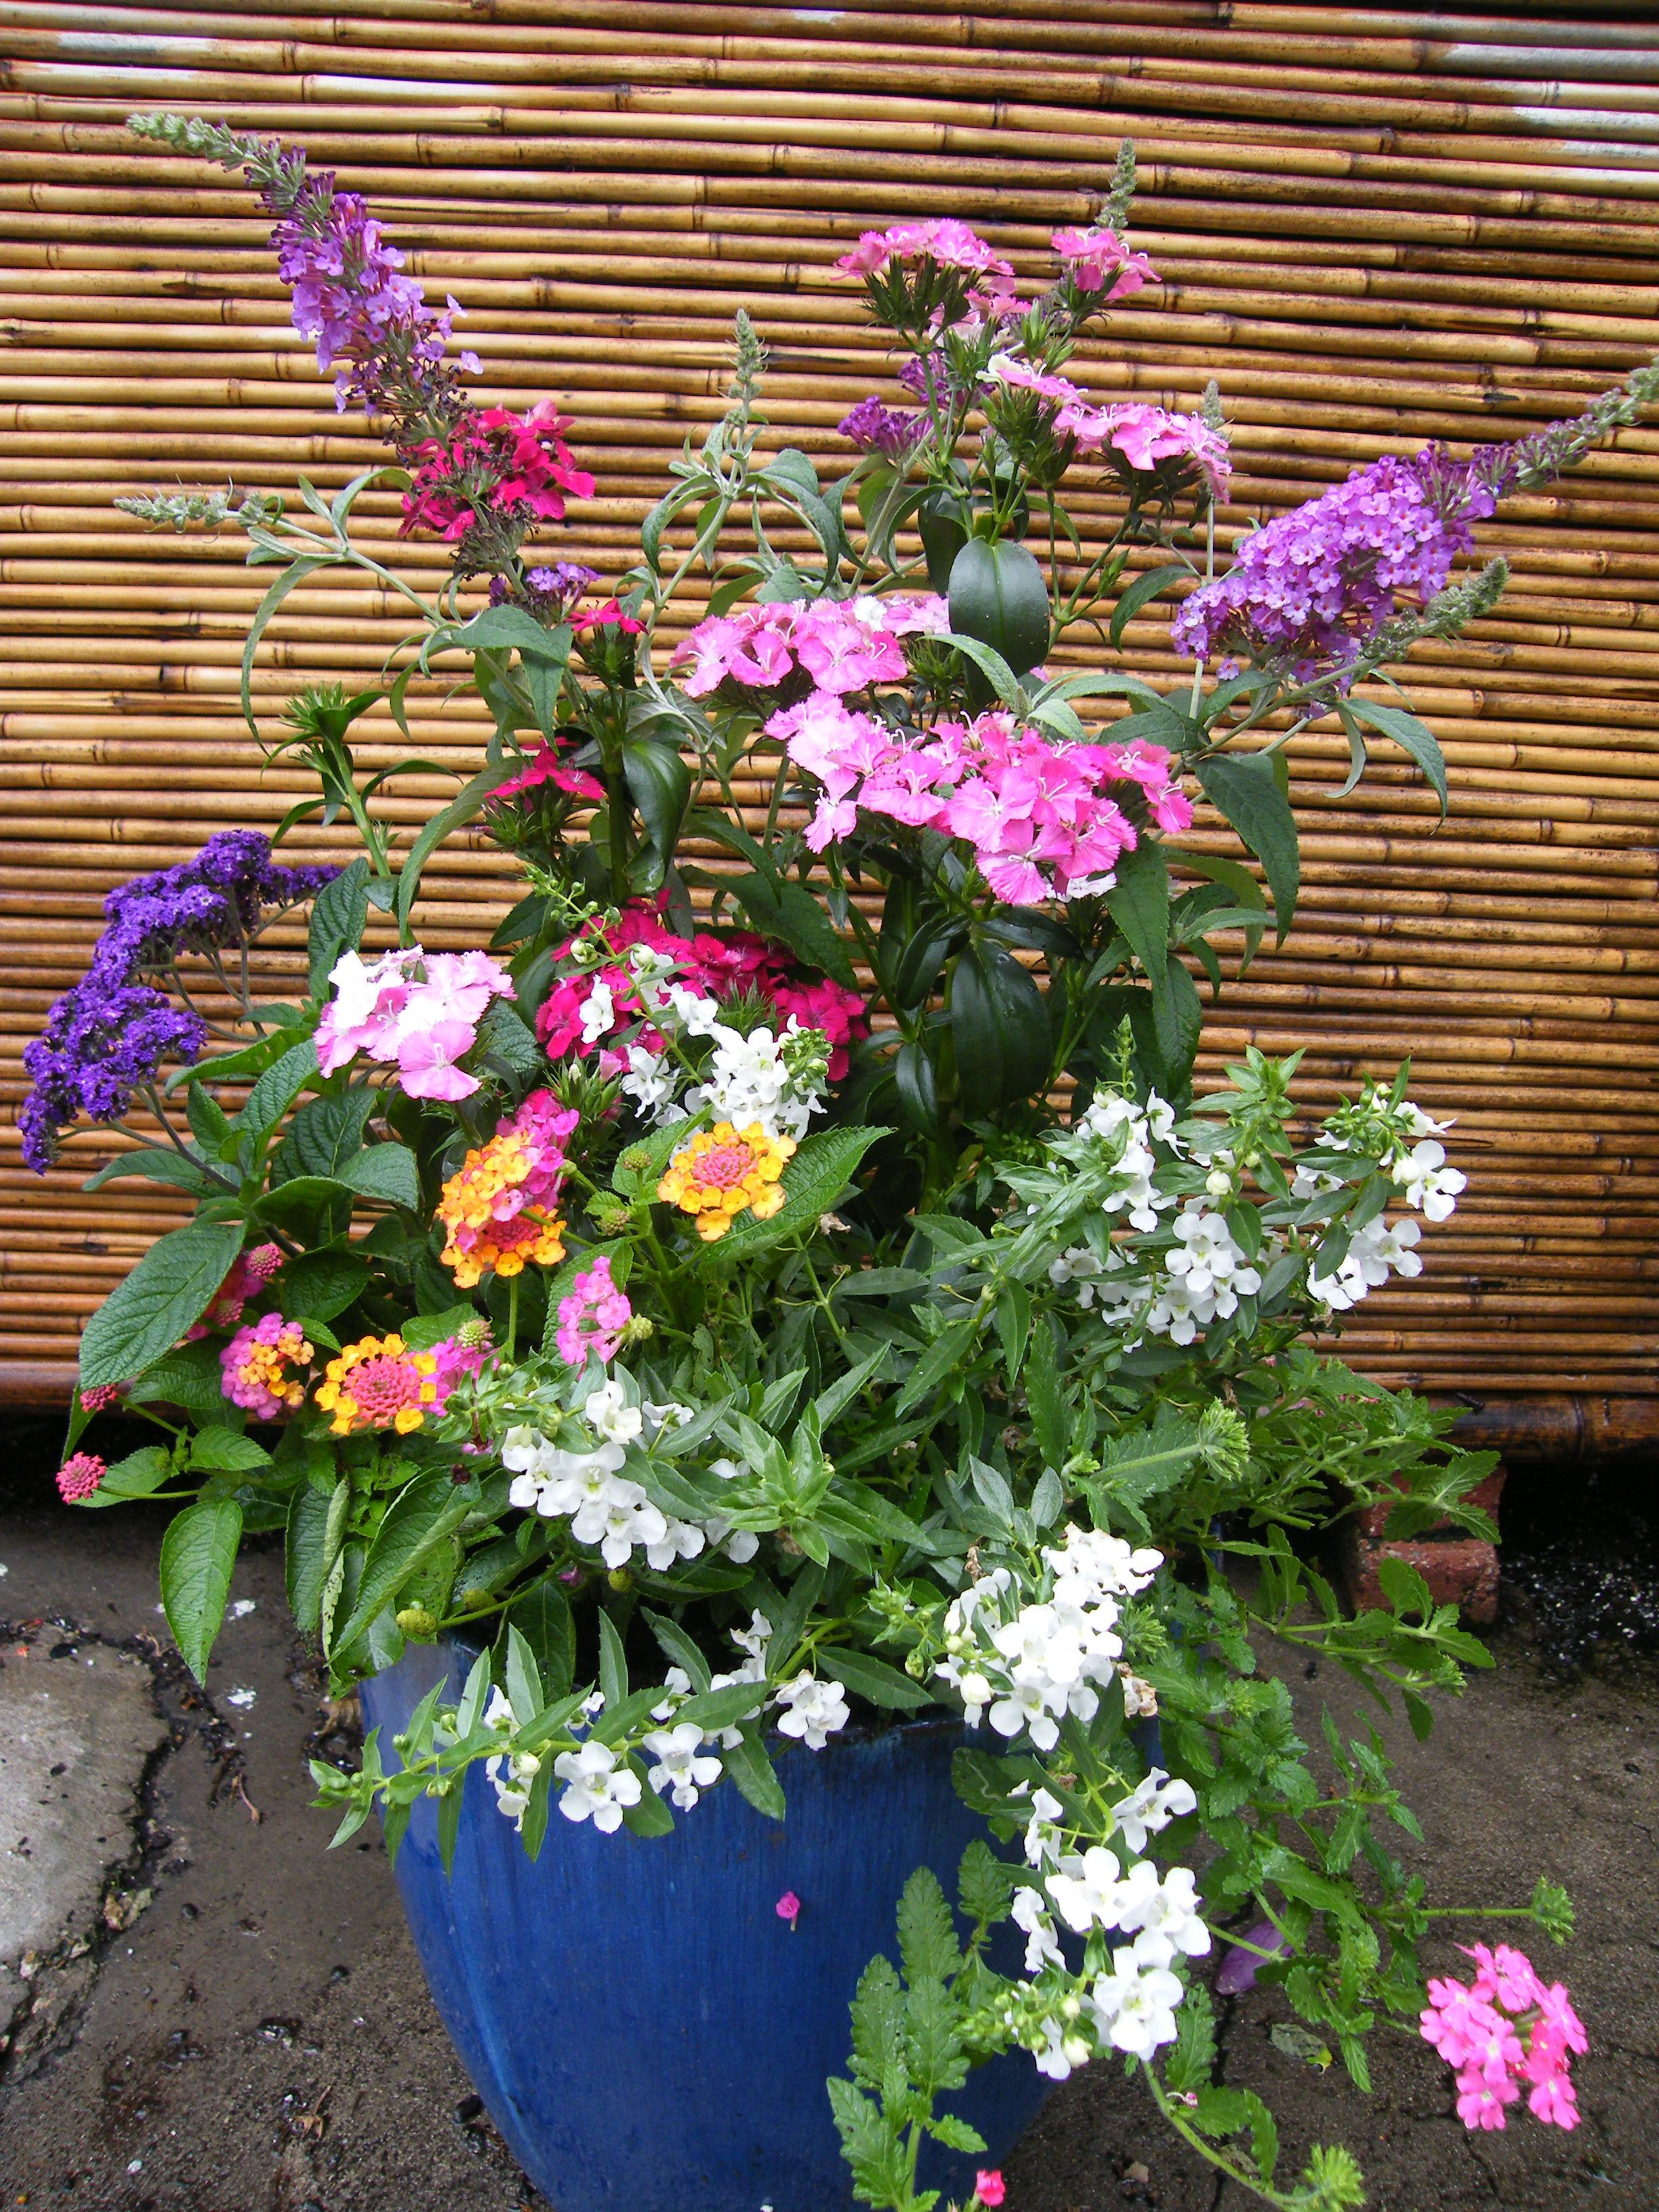 Angelonia Flower Inspirational Container Garden with Angelonia Flowers Buddleia Heliotrope